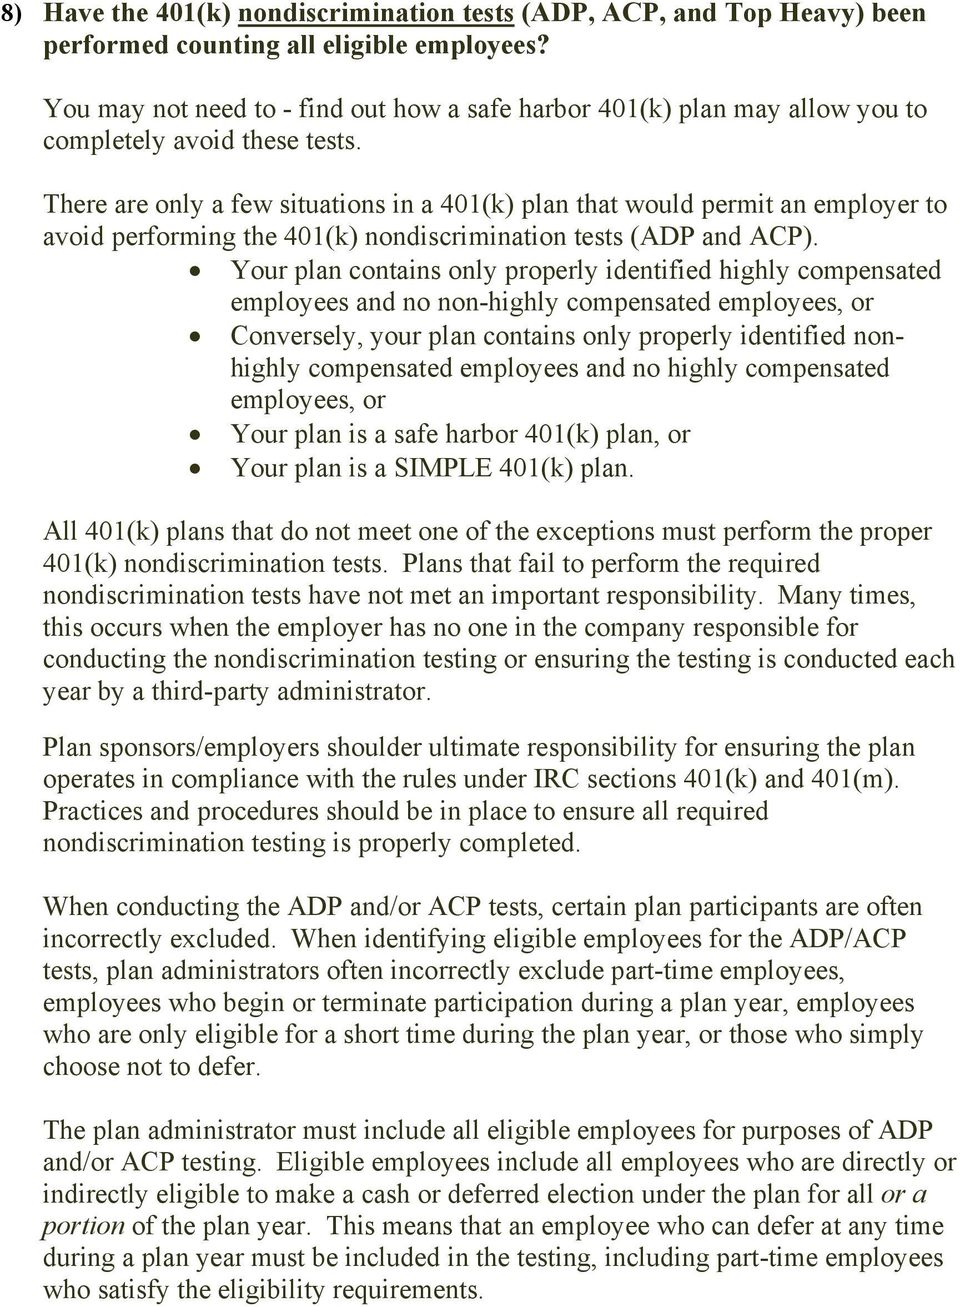 There are only a few situations in a 401(k) plan that would permit an employer to avoid performing the 401(k) nondiscrimination tests (ADP and ACP).